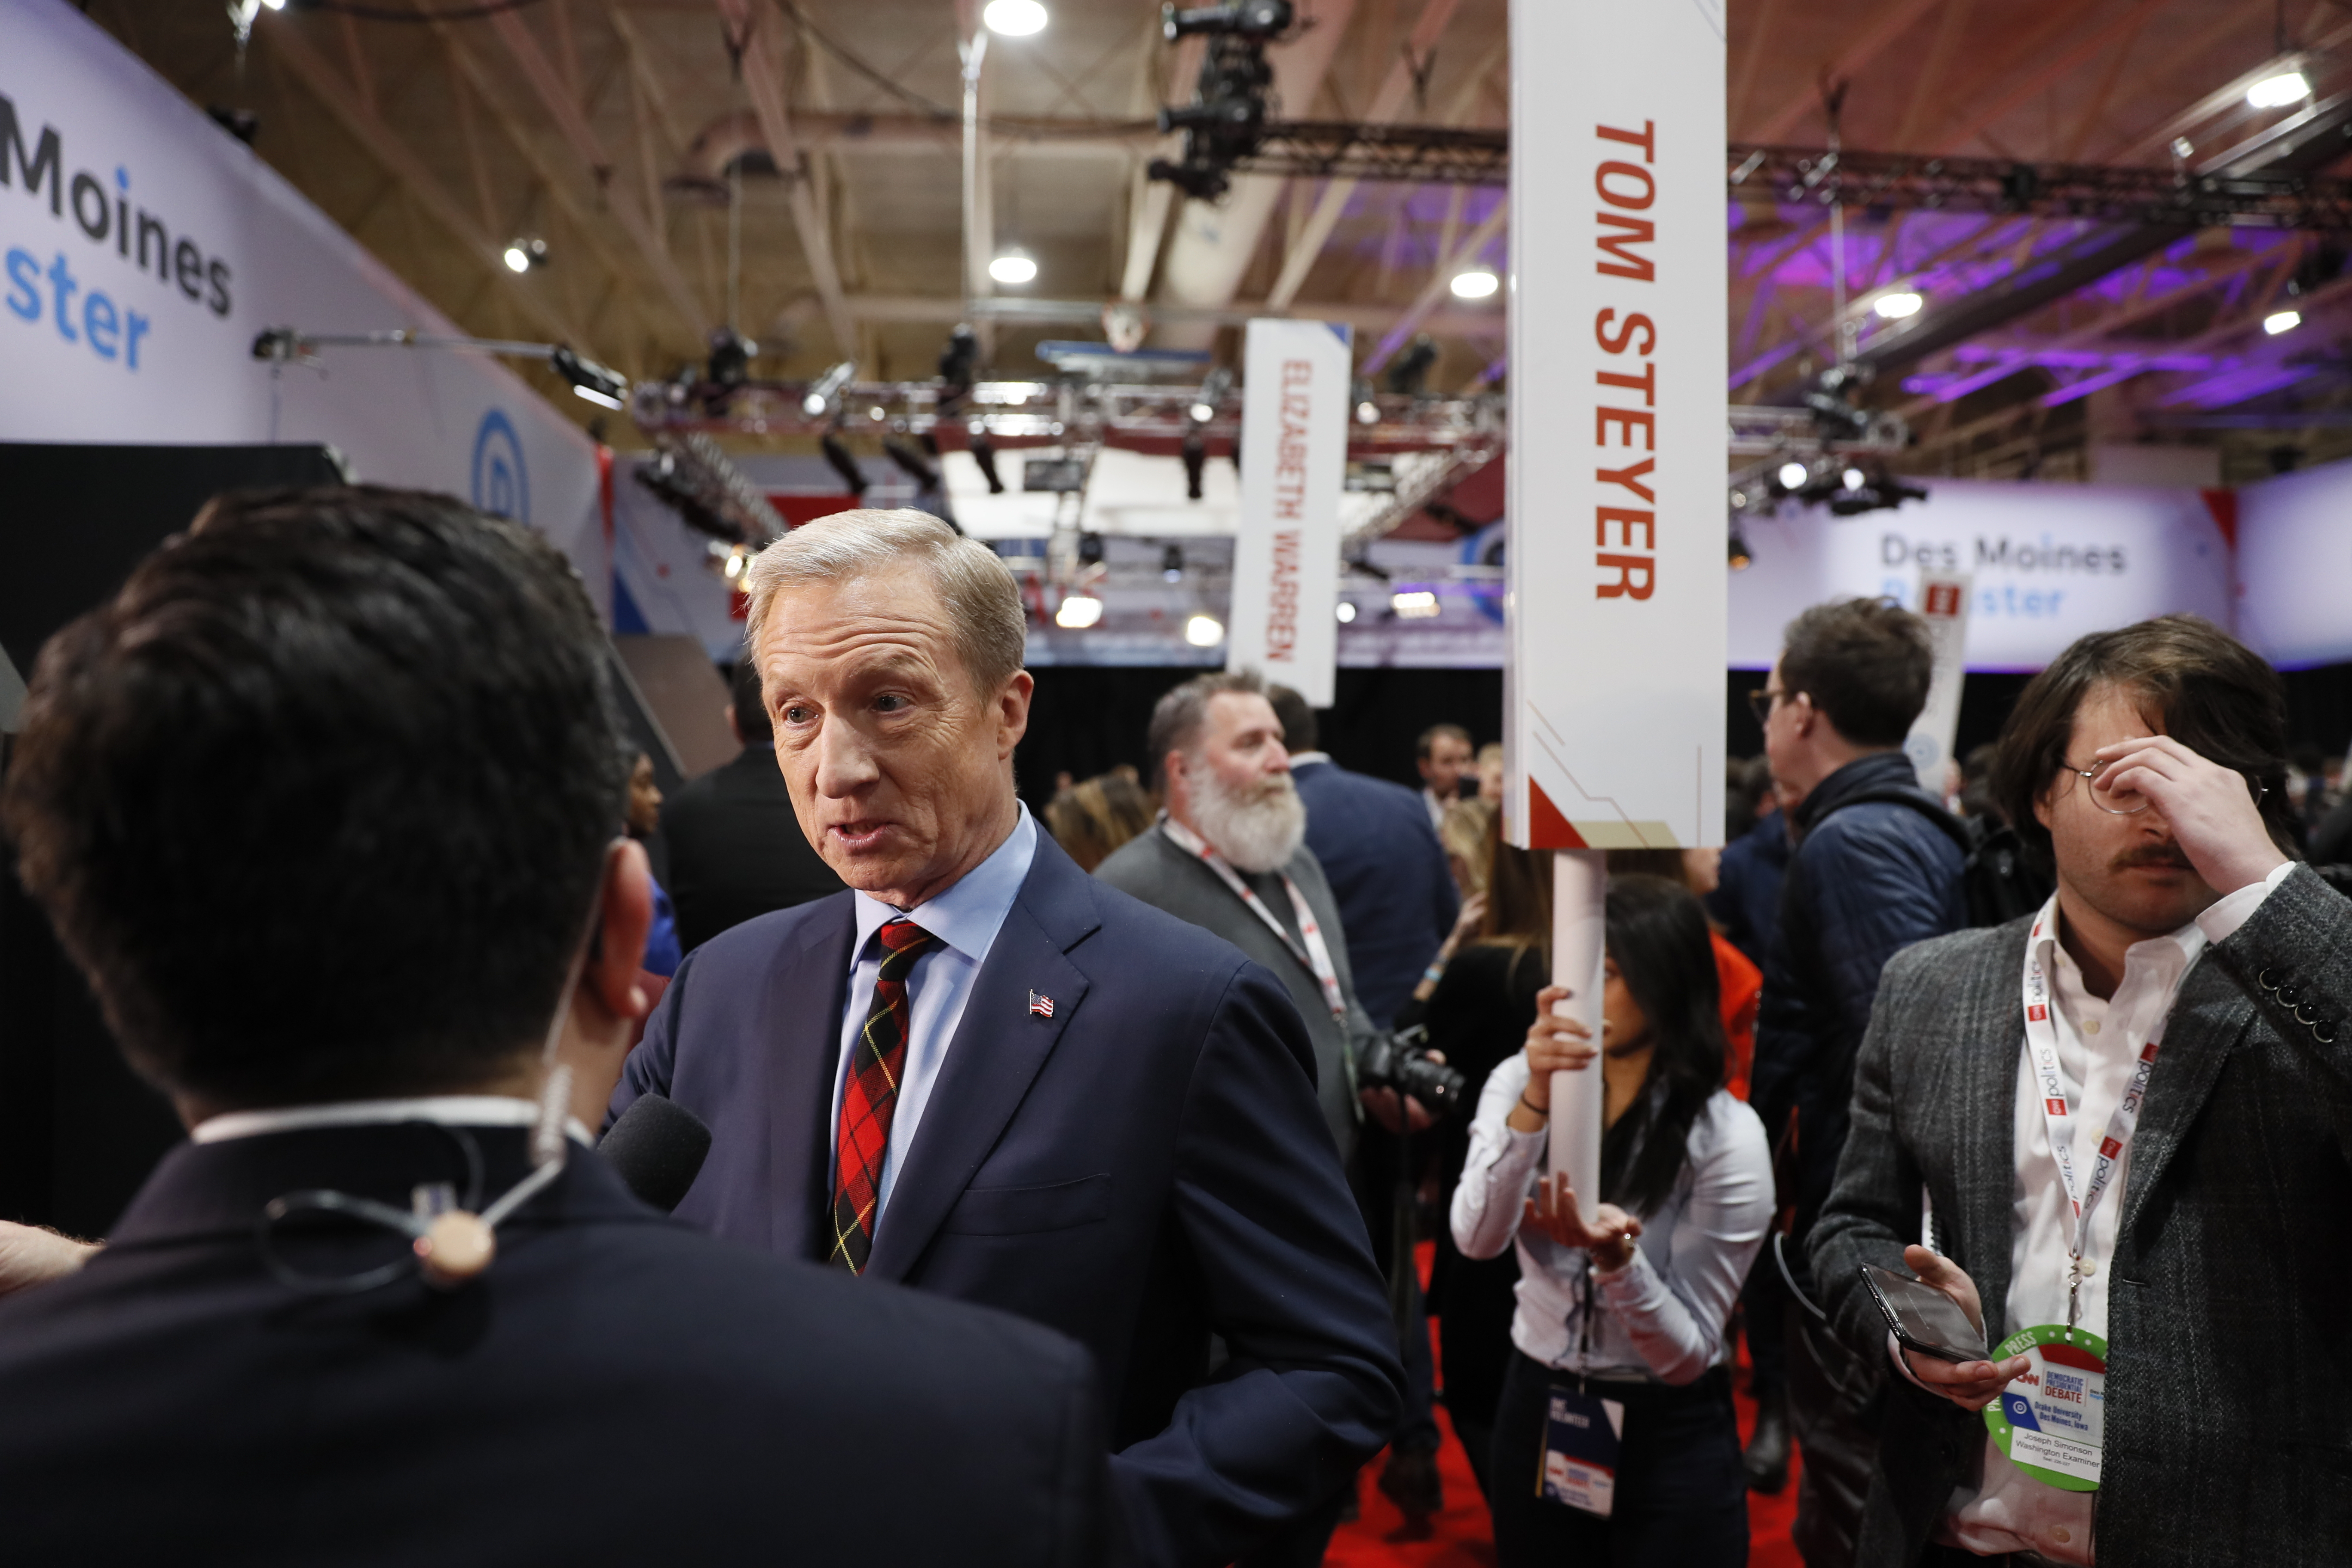 An open letter to Tom Steyer about his presidential candidacy